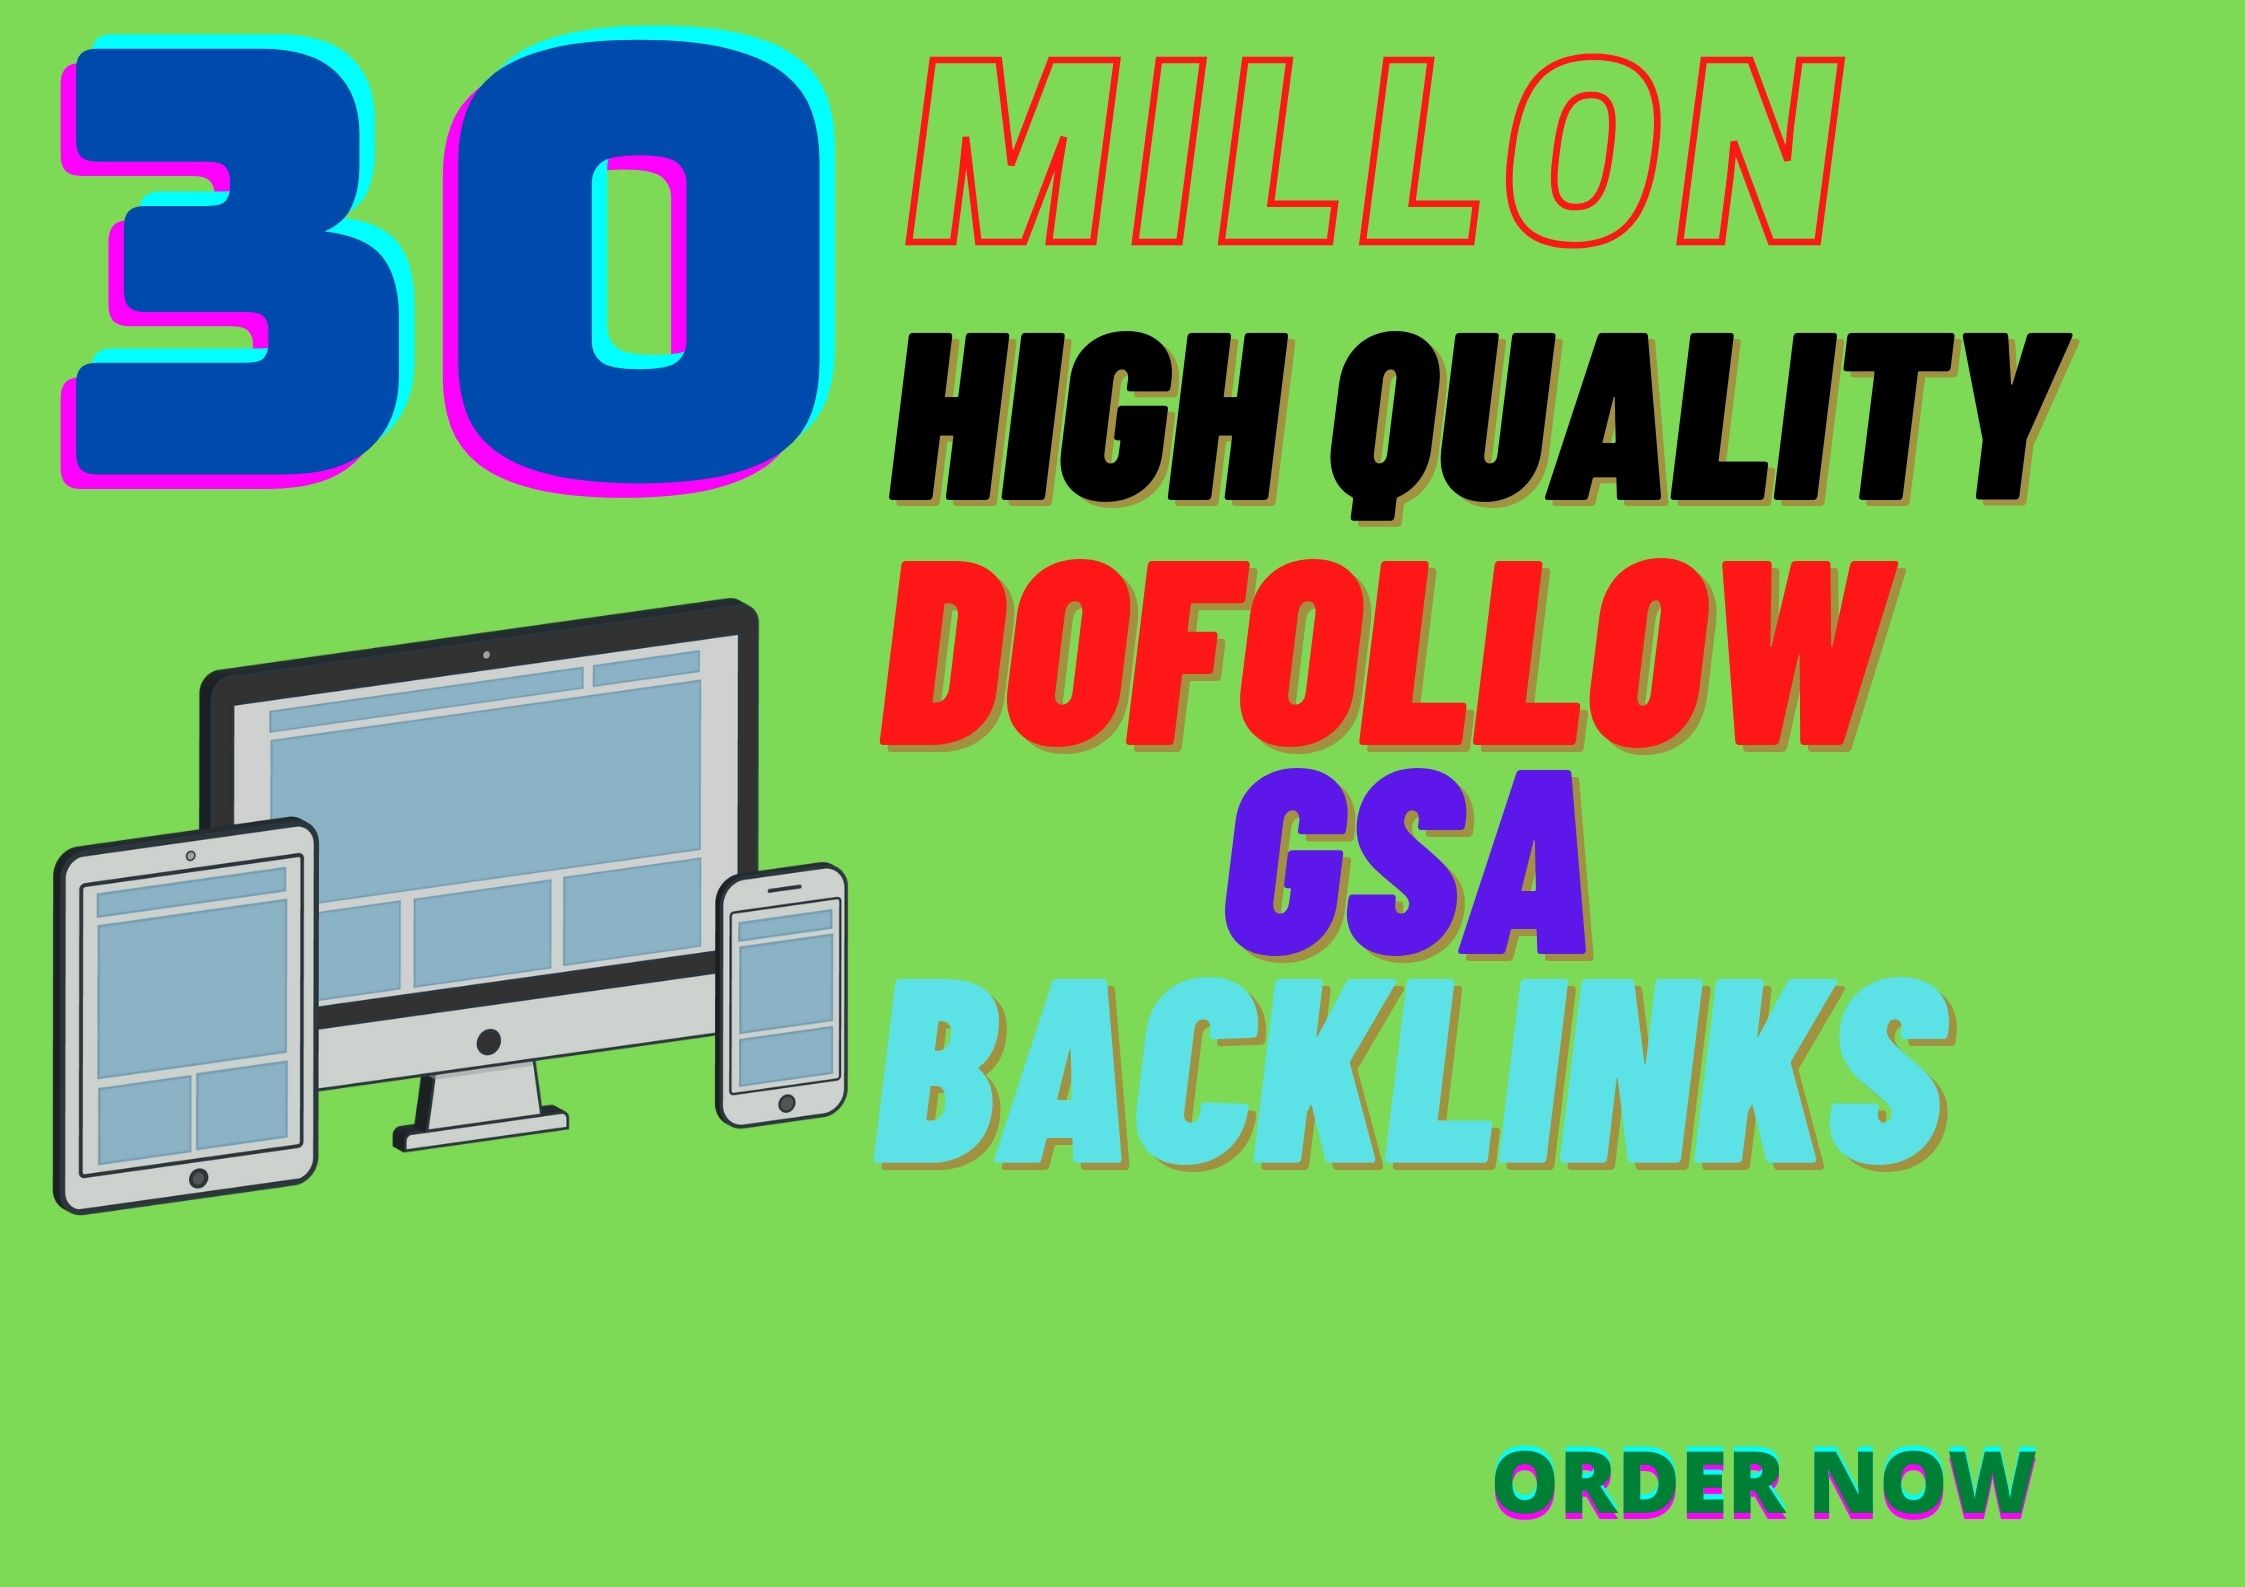 I will create high quality backlinks SEO service for google ranking